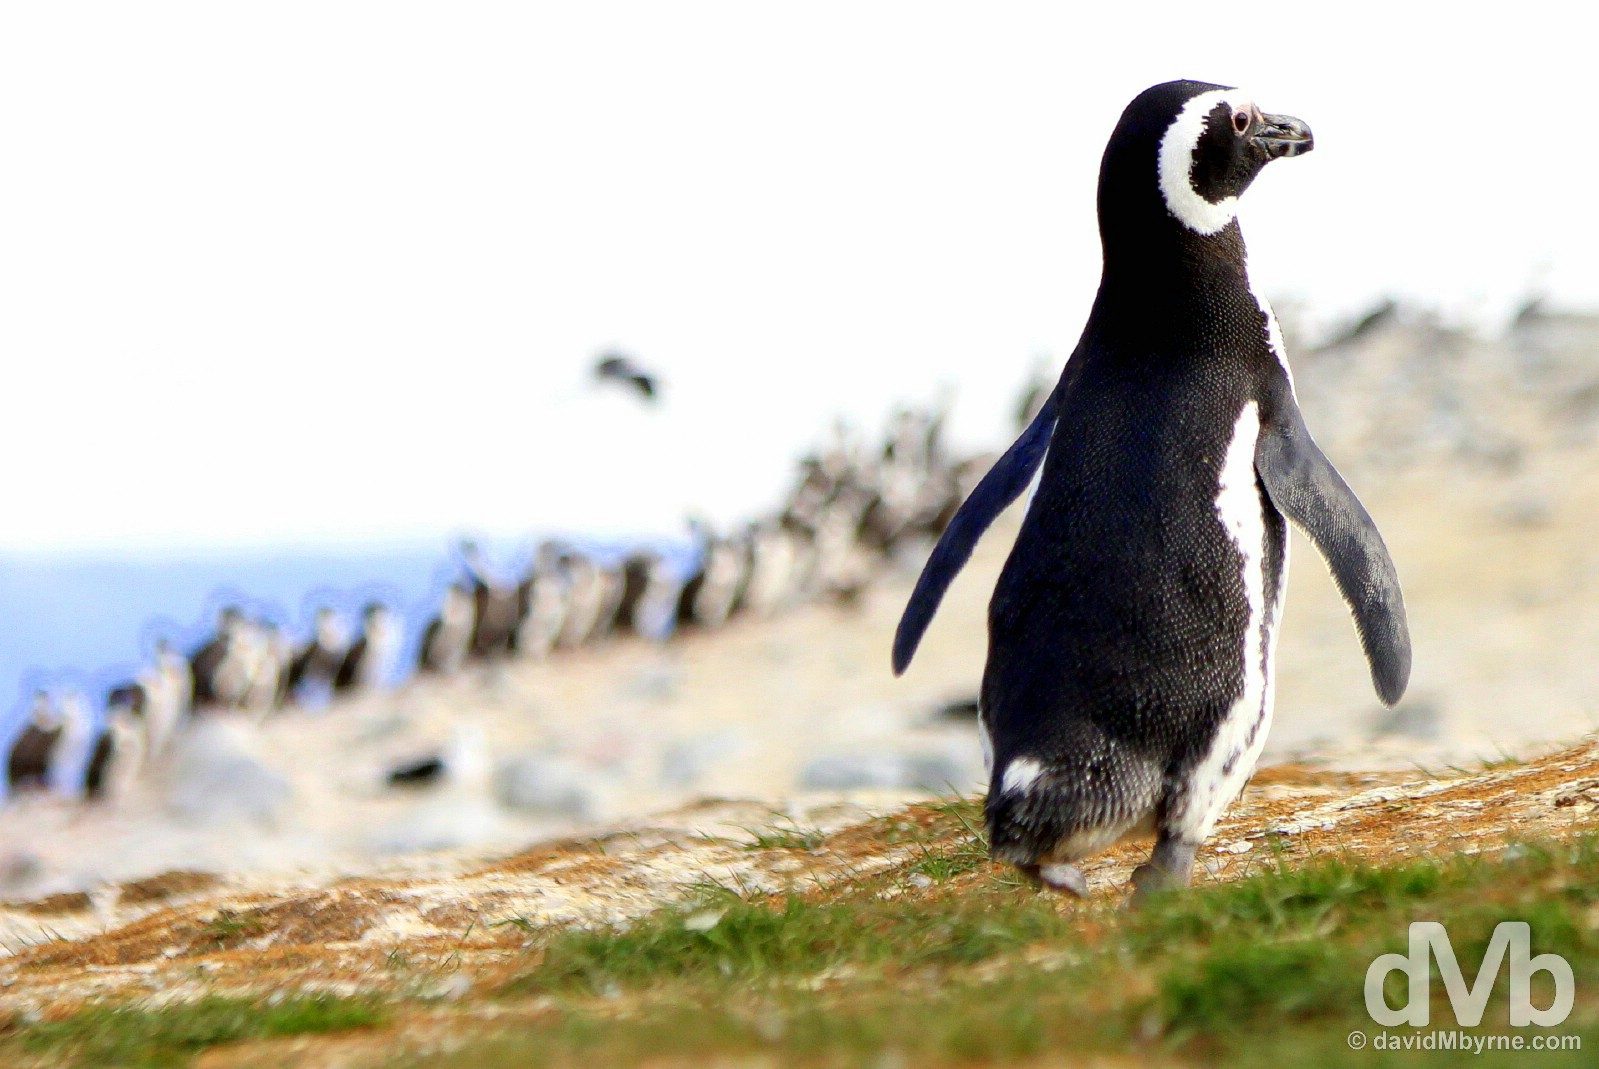 A Magellanic penguin on Isla Magdalena in the Magellan Strait, Chile. November 10, 2015.